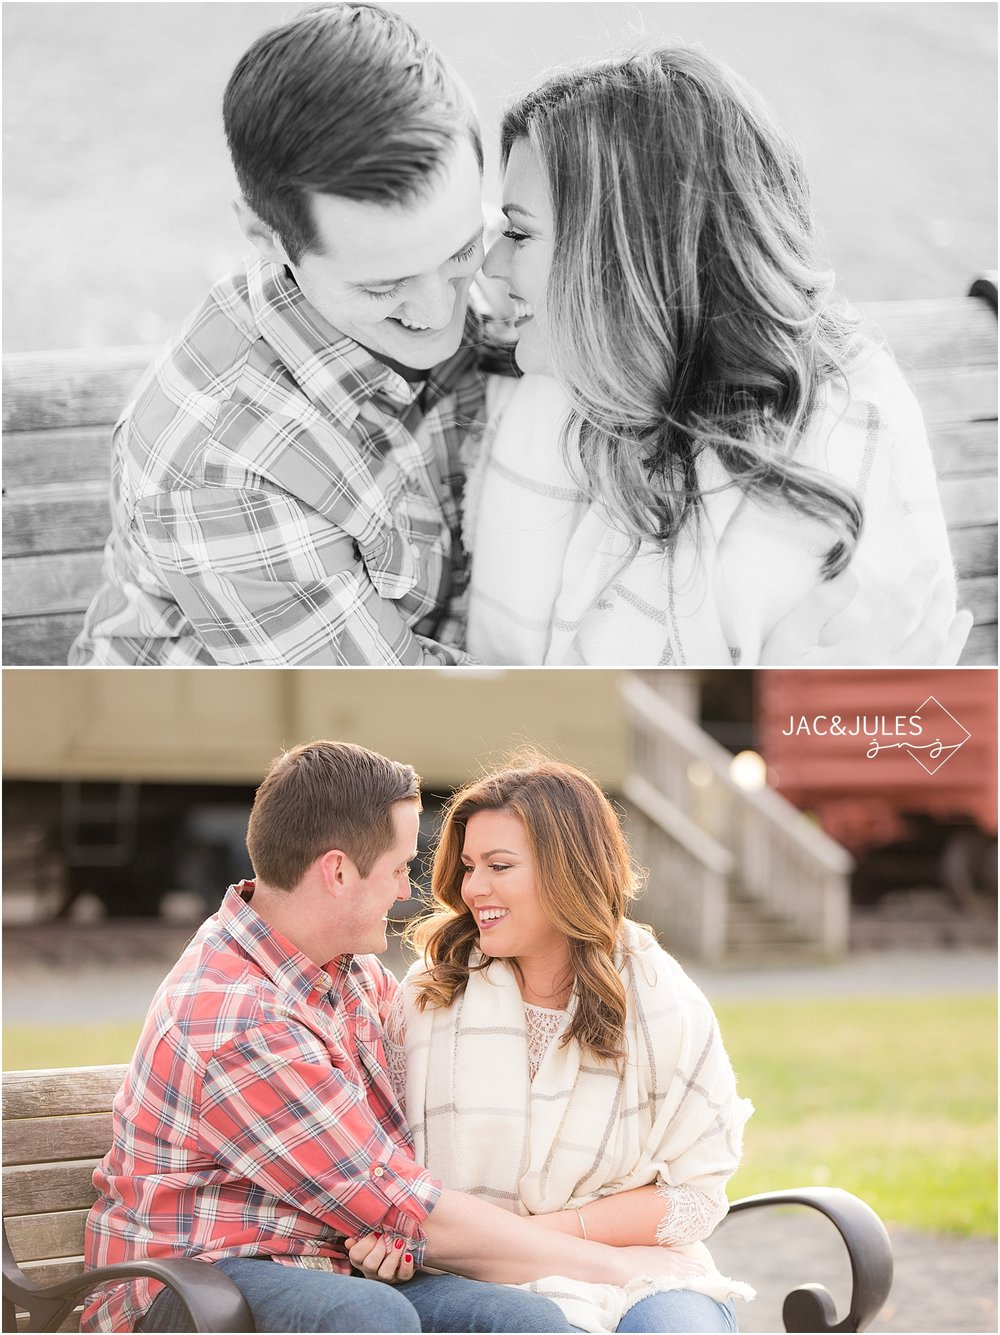 jacnjules photographs fall engagement photos at Liberty State Park in NJ